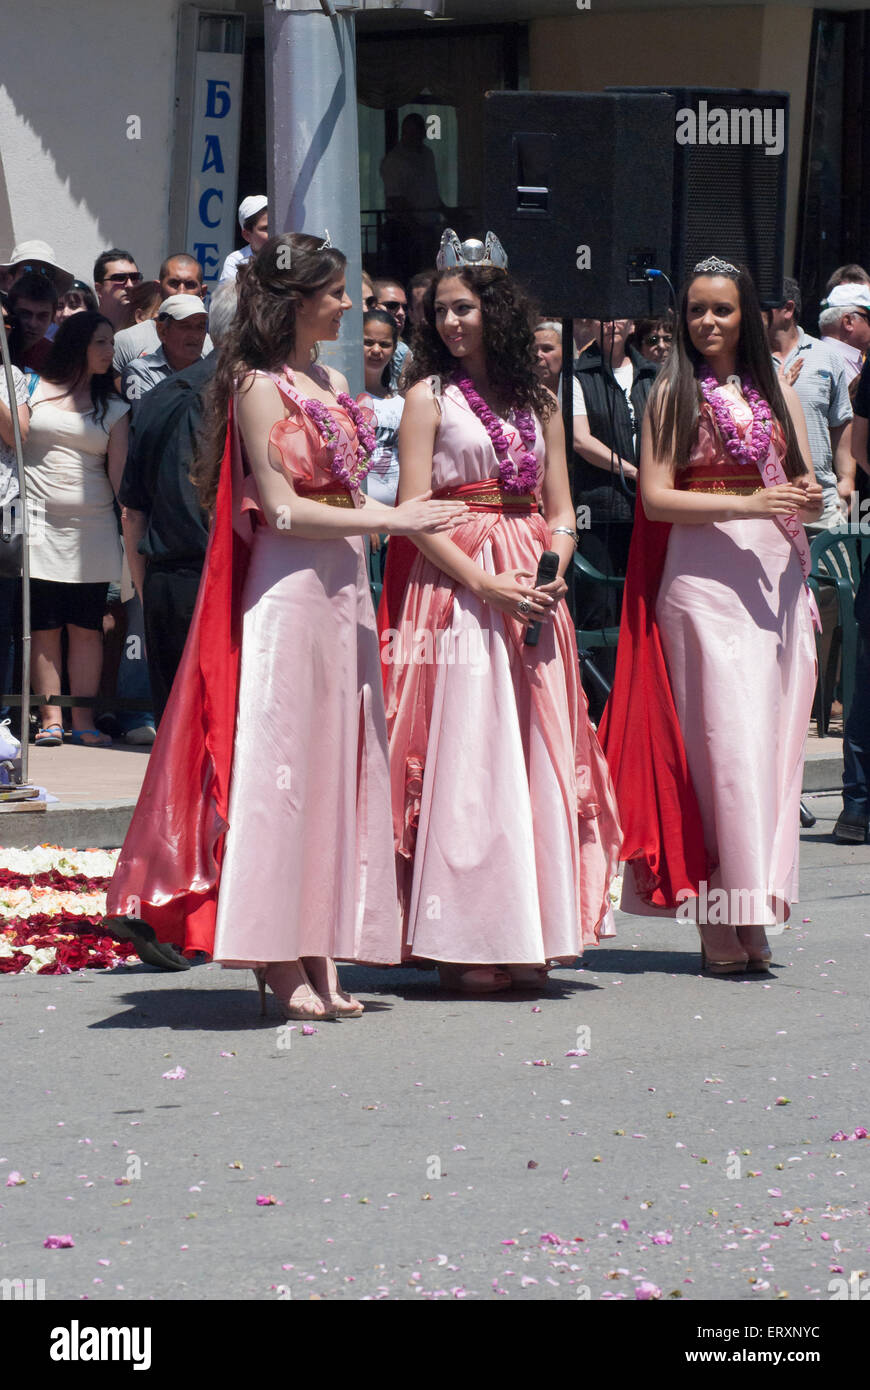 Princesses of Rose elected during Rose Festival in Bulgarian city Kazanlak - Stock Image